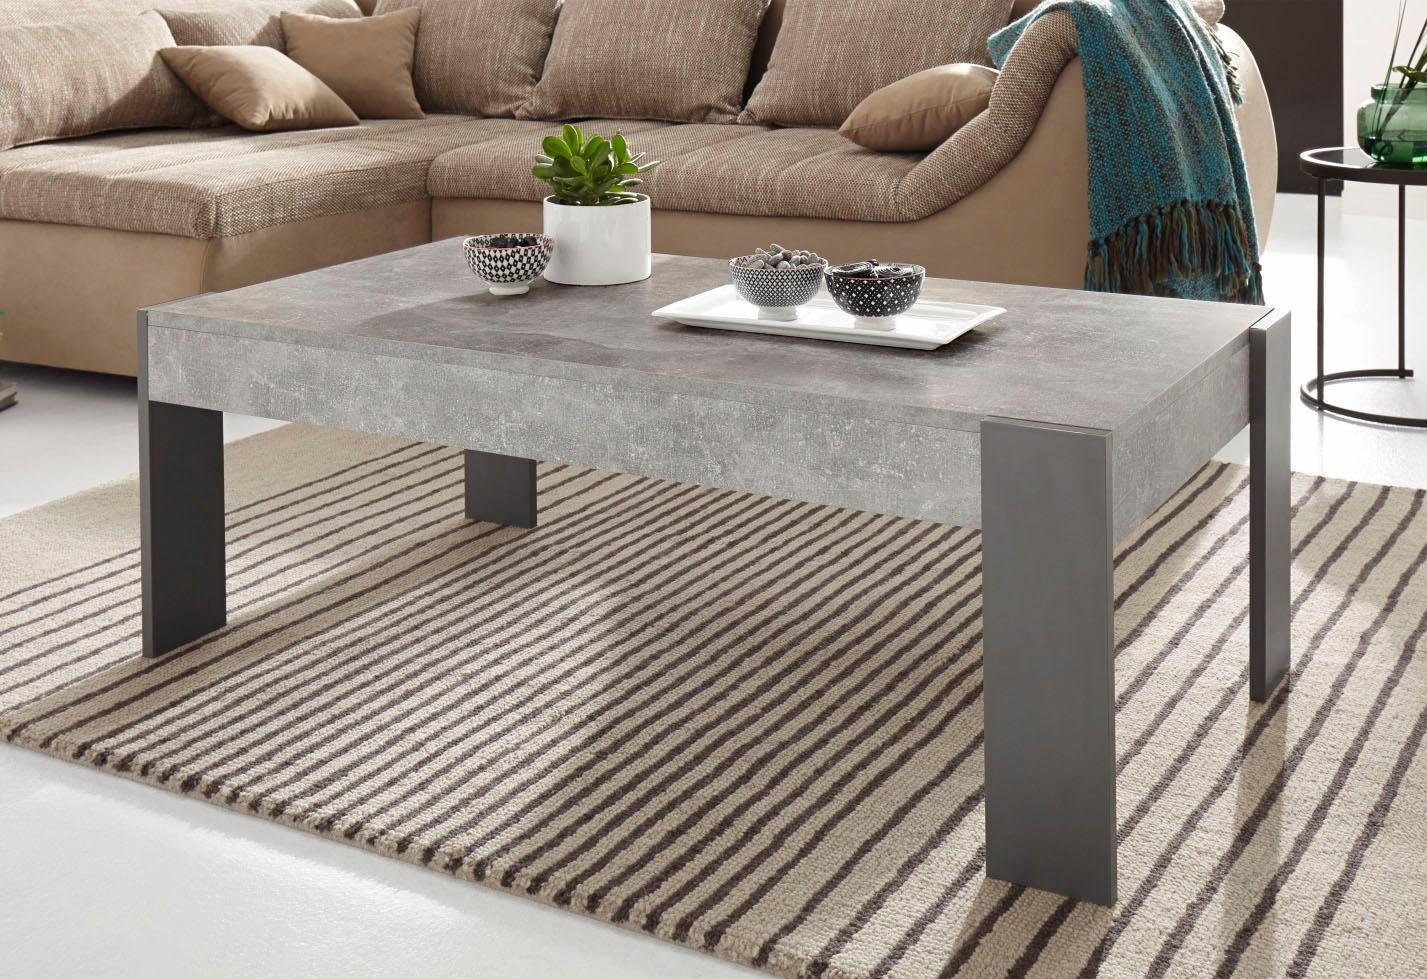 Grijze Salon Tafel.Salontafel In Moderne Beton Look